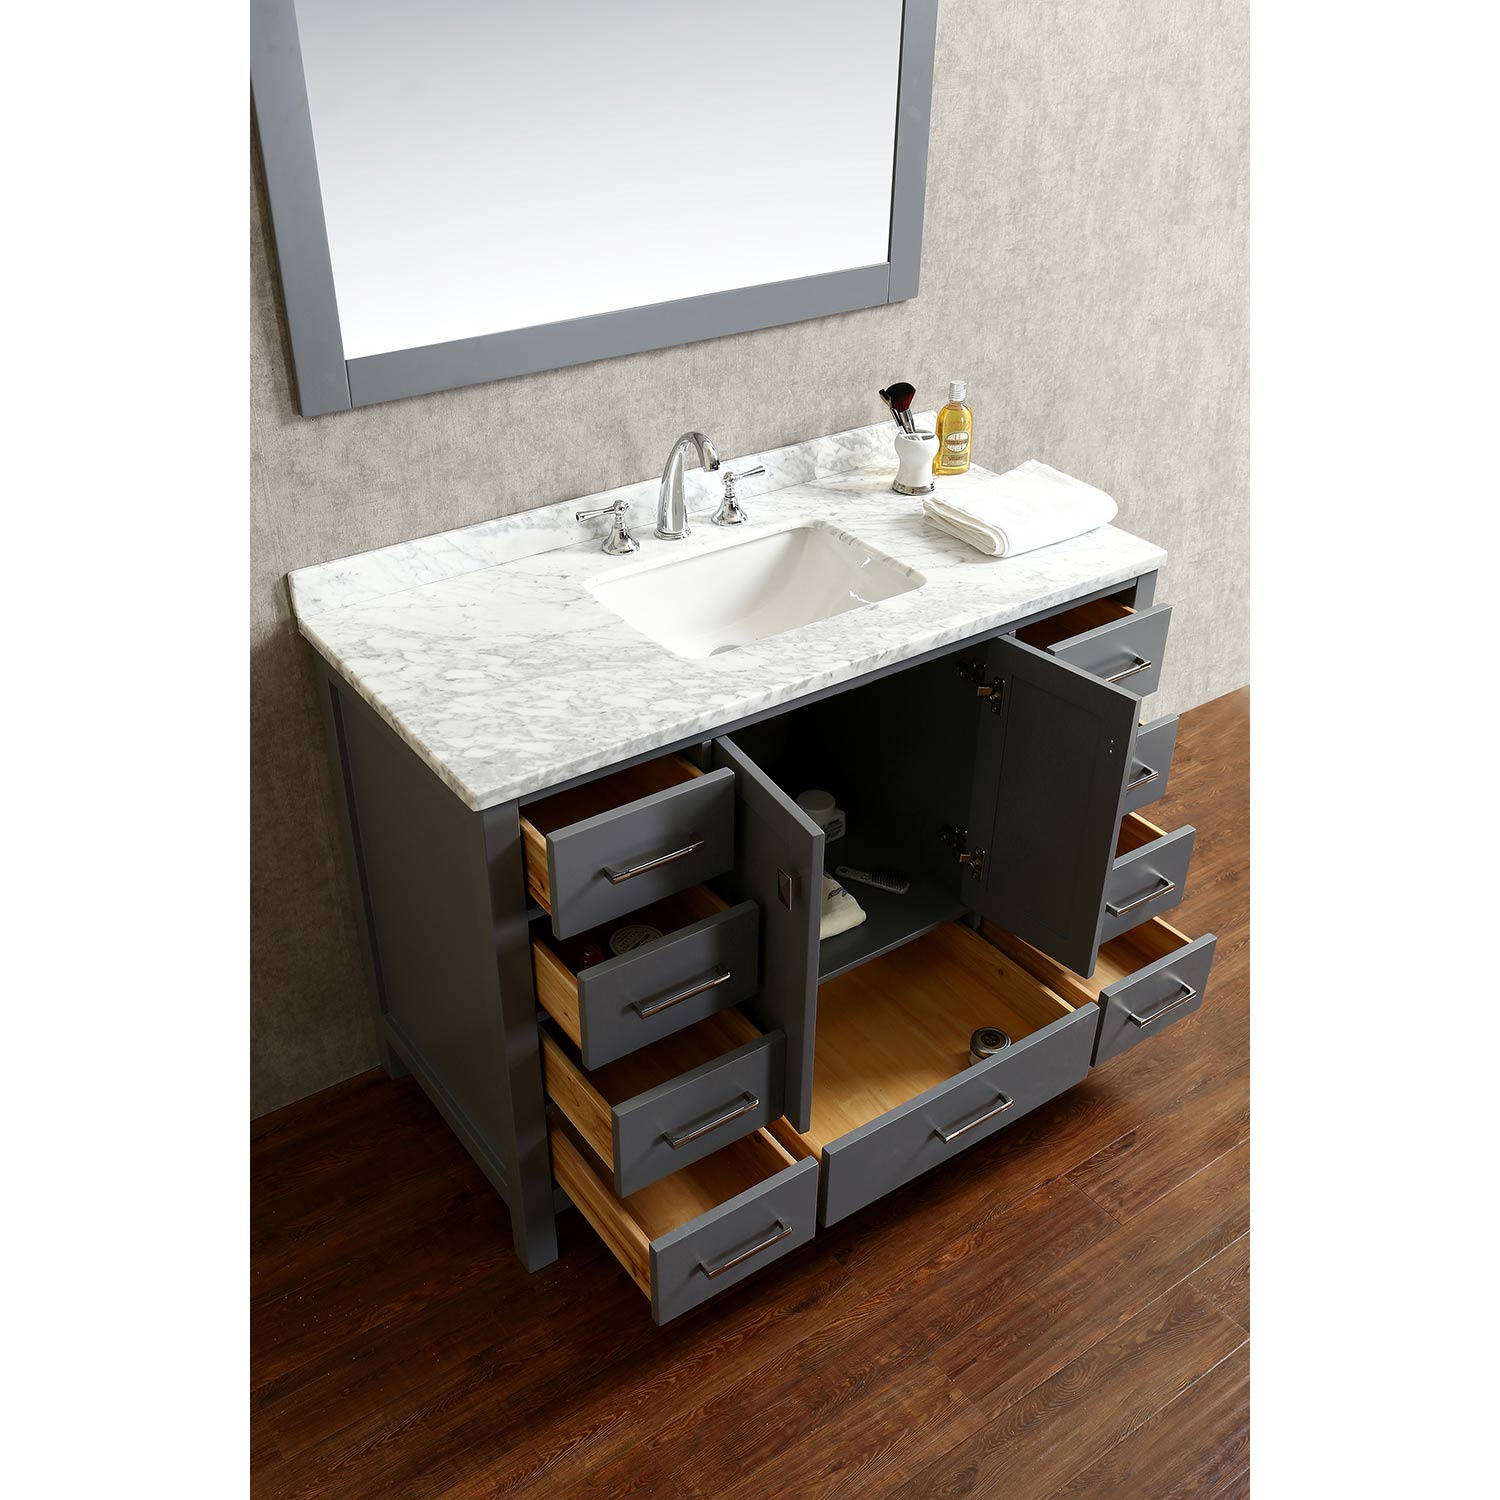 Vincent 48  Solid Wood Single Bathroom Vanity in Charcoal Grey HM 13001 48  WMSQ CG. Buy Vincent 48 Inch Solid Wood Single Bathroom Vanity in Charcoal